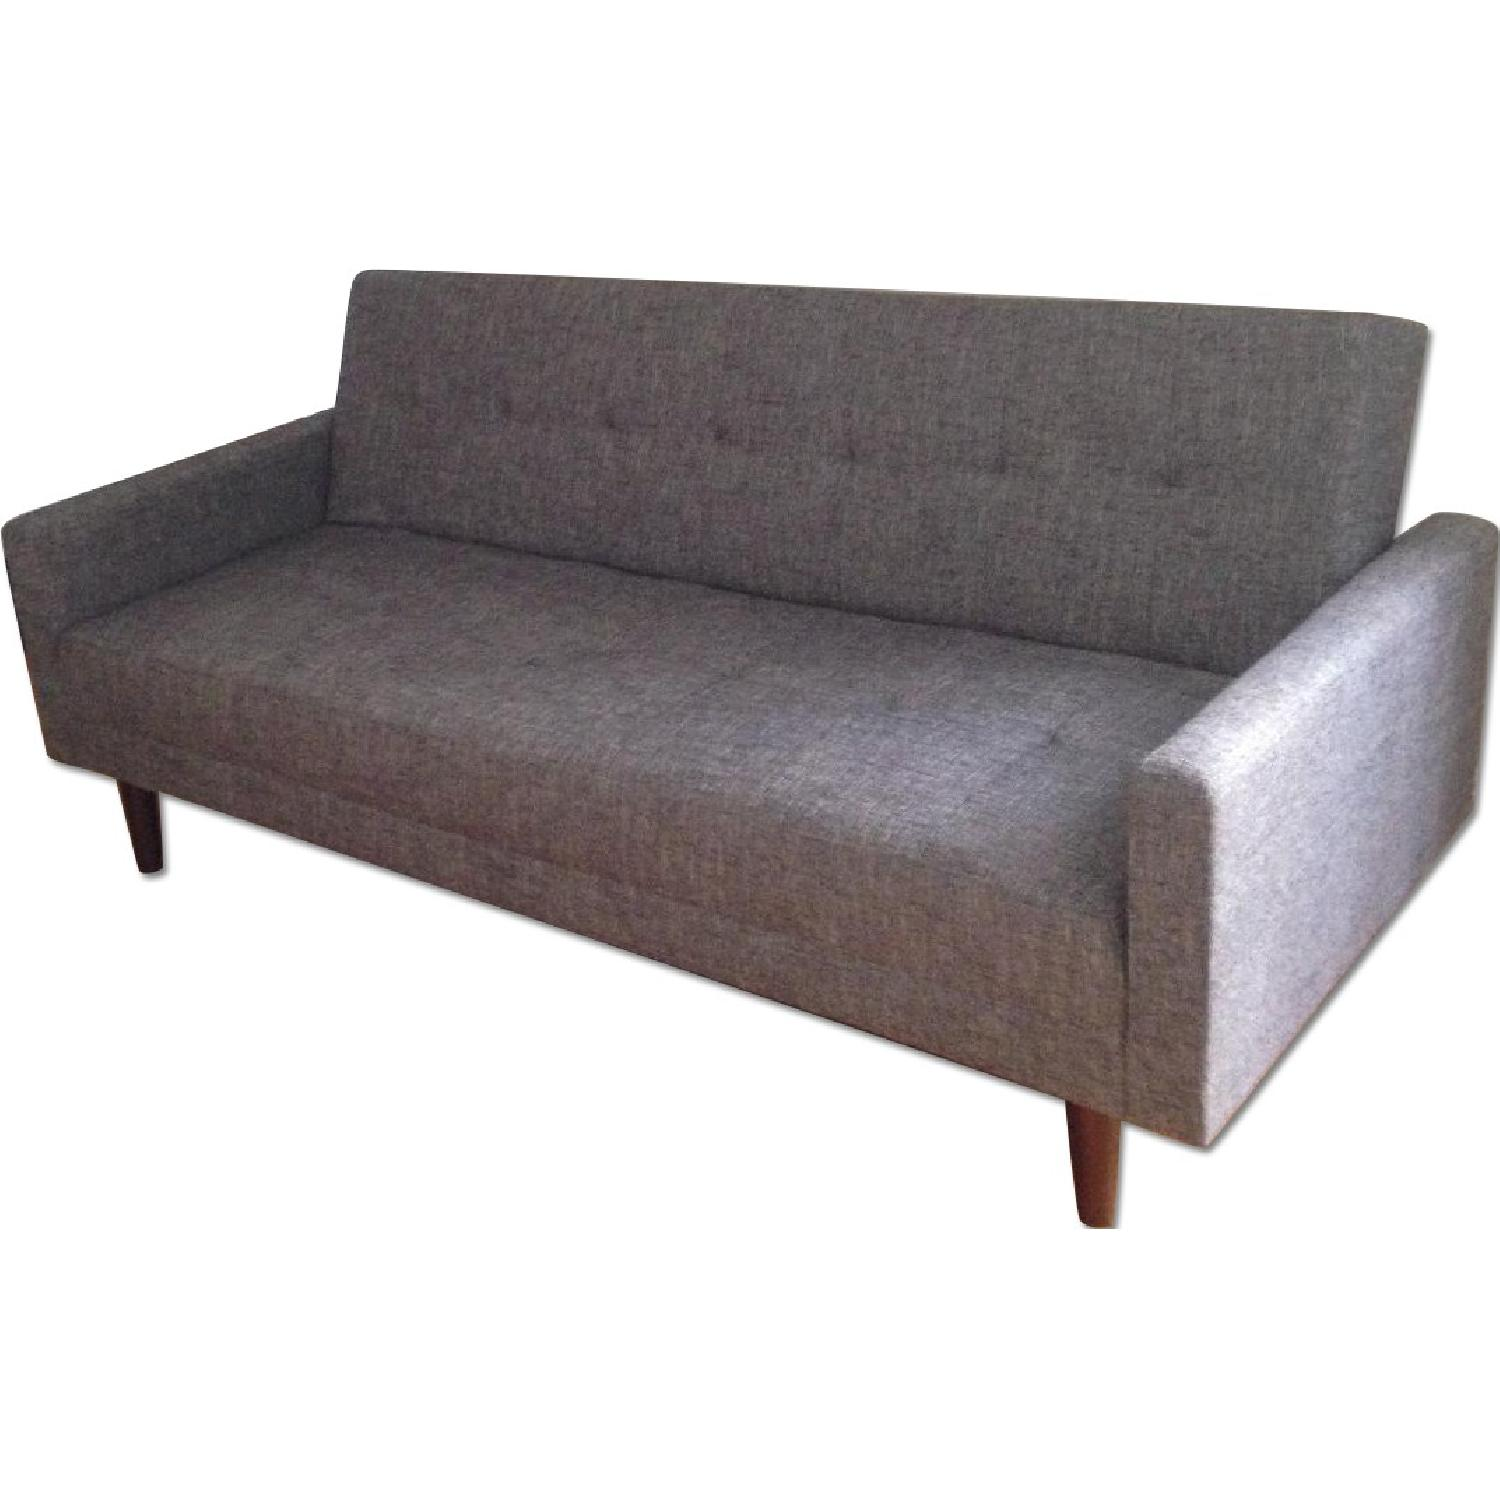 Modern Convertible Sofa Sleeper in Grey Fabric w AptDeco